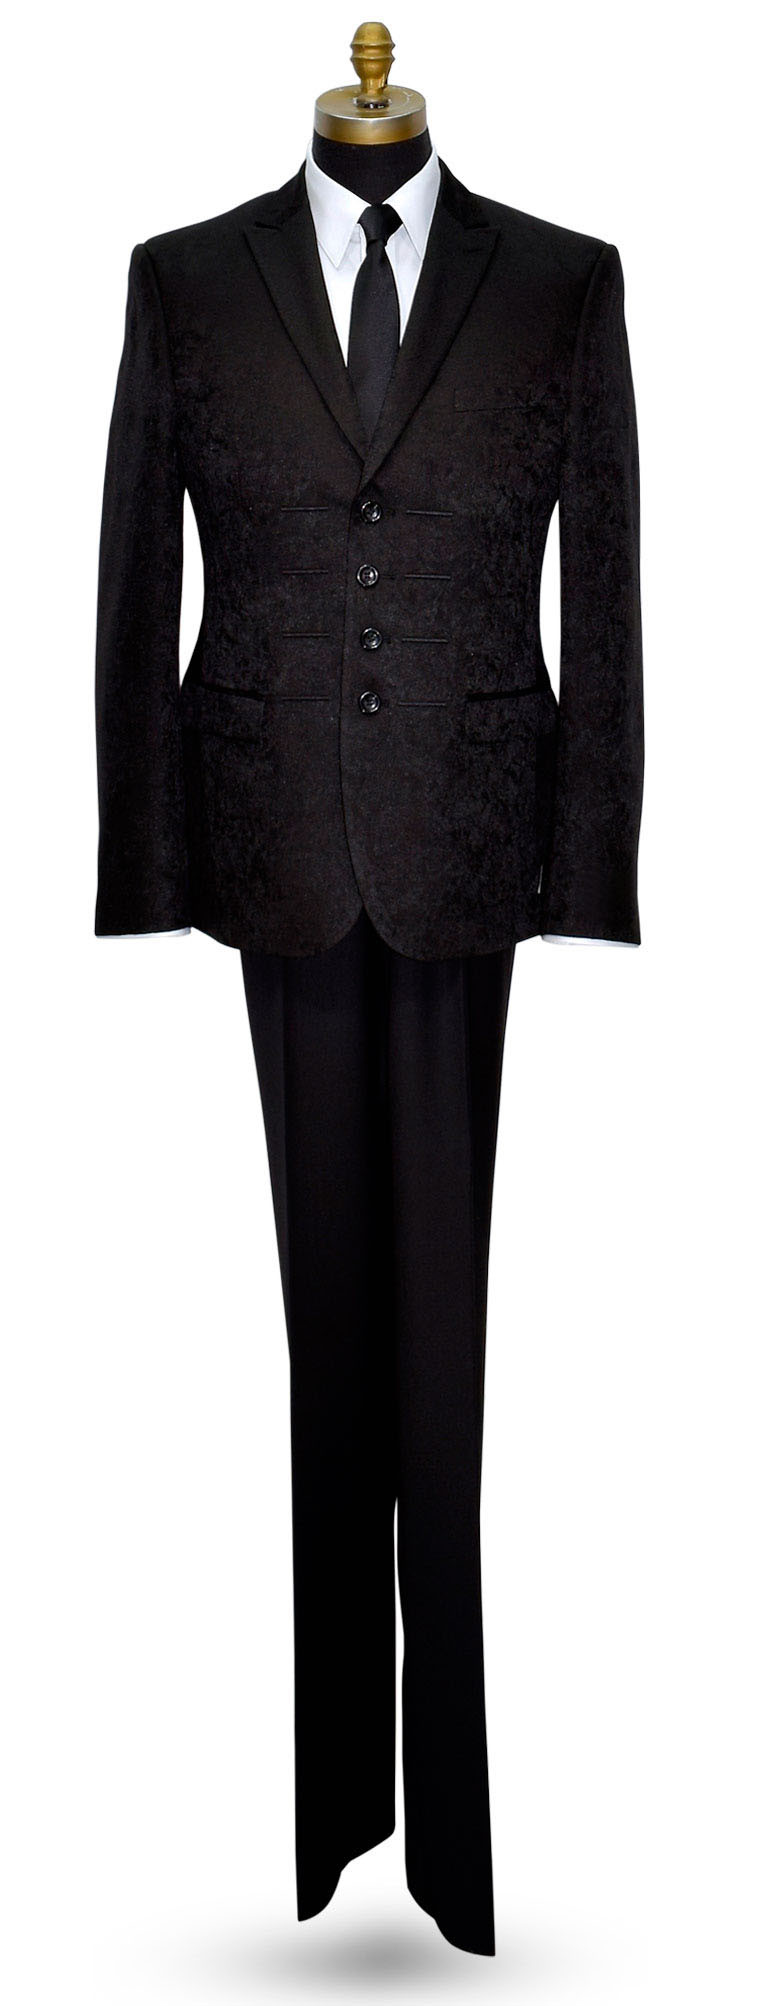 BLACK BROCADE TUXEDO 4 BUTTON PEAK LAPEL ENSEMBLE